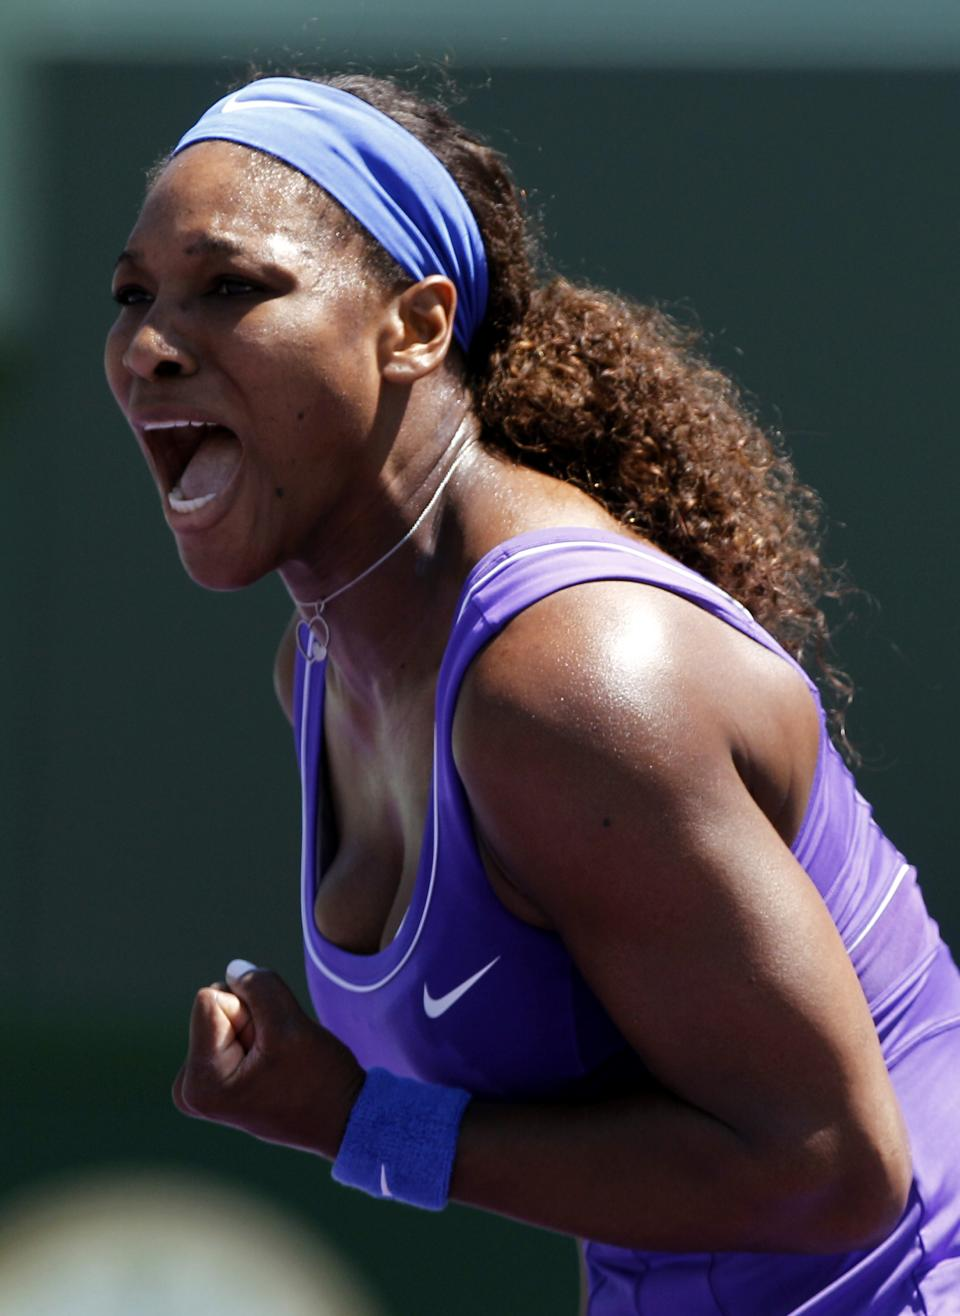 Serena Williams reacts after winning a point in the first set against Samantha Stosur, of Australia, during the Sony Ericsson Open tennis tournament, Monday, March 26, 2012, in Key Biscayne, Fla. (AP Photo/Lynne Sladky)